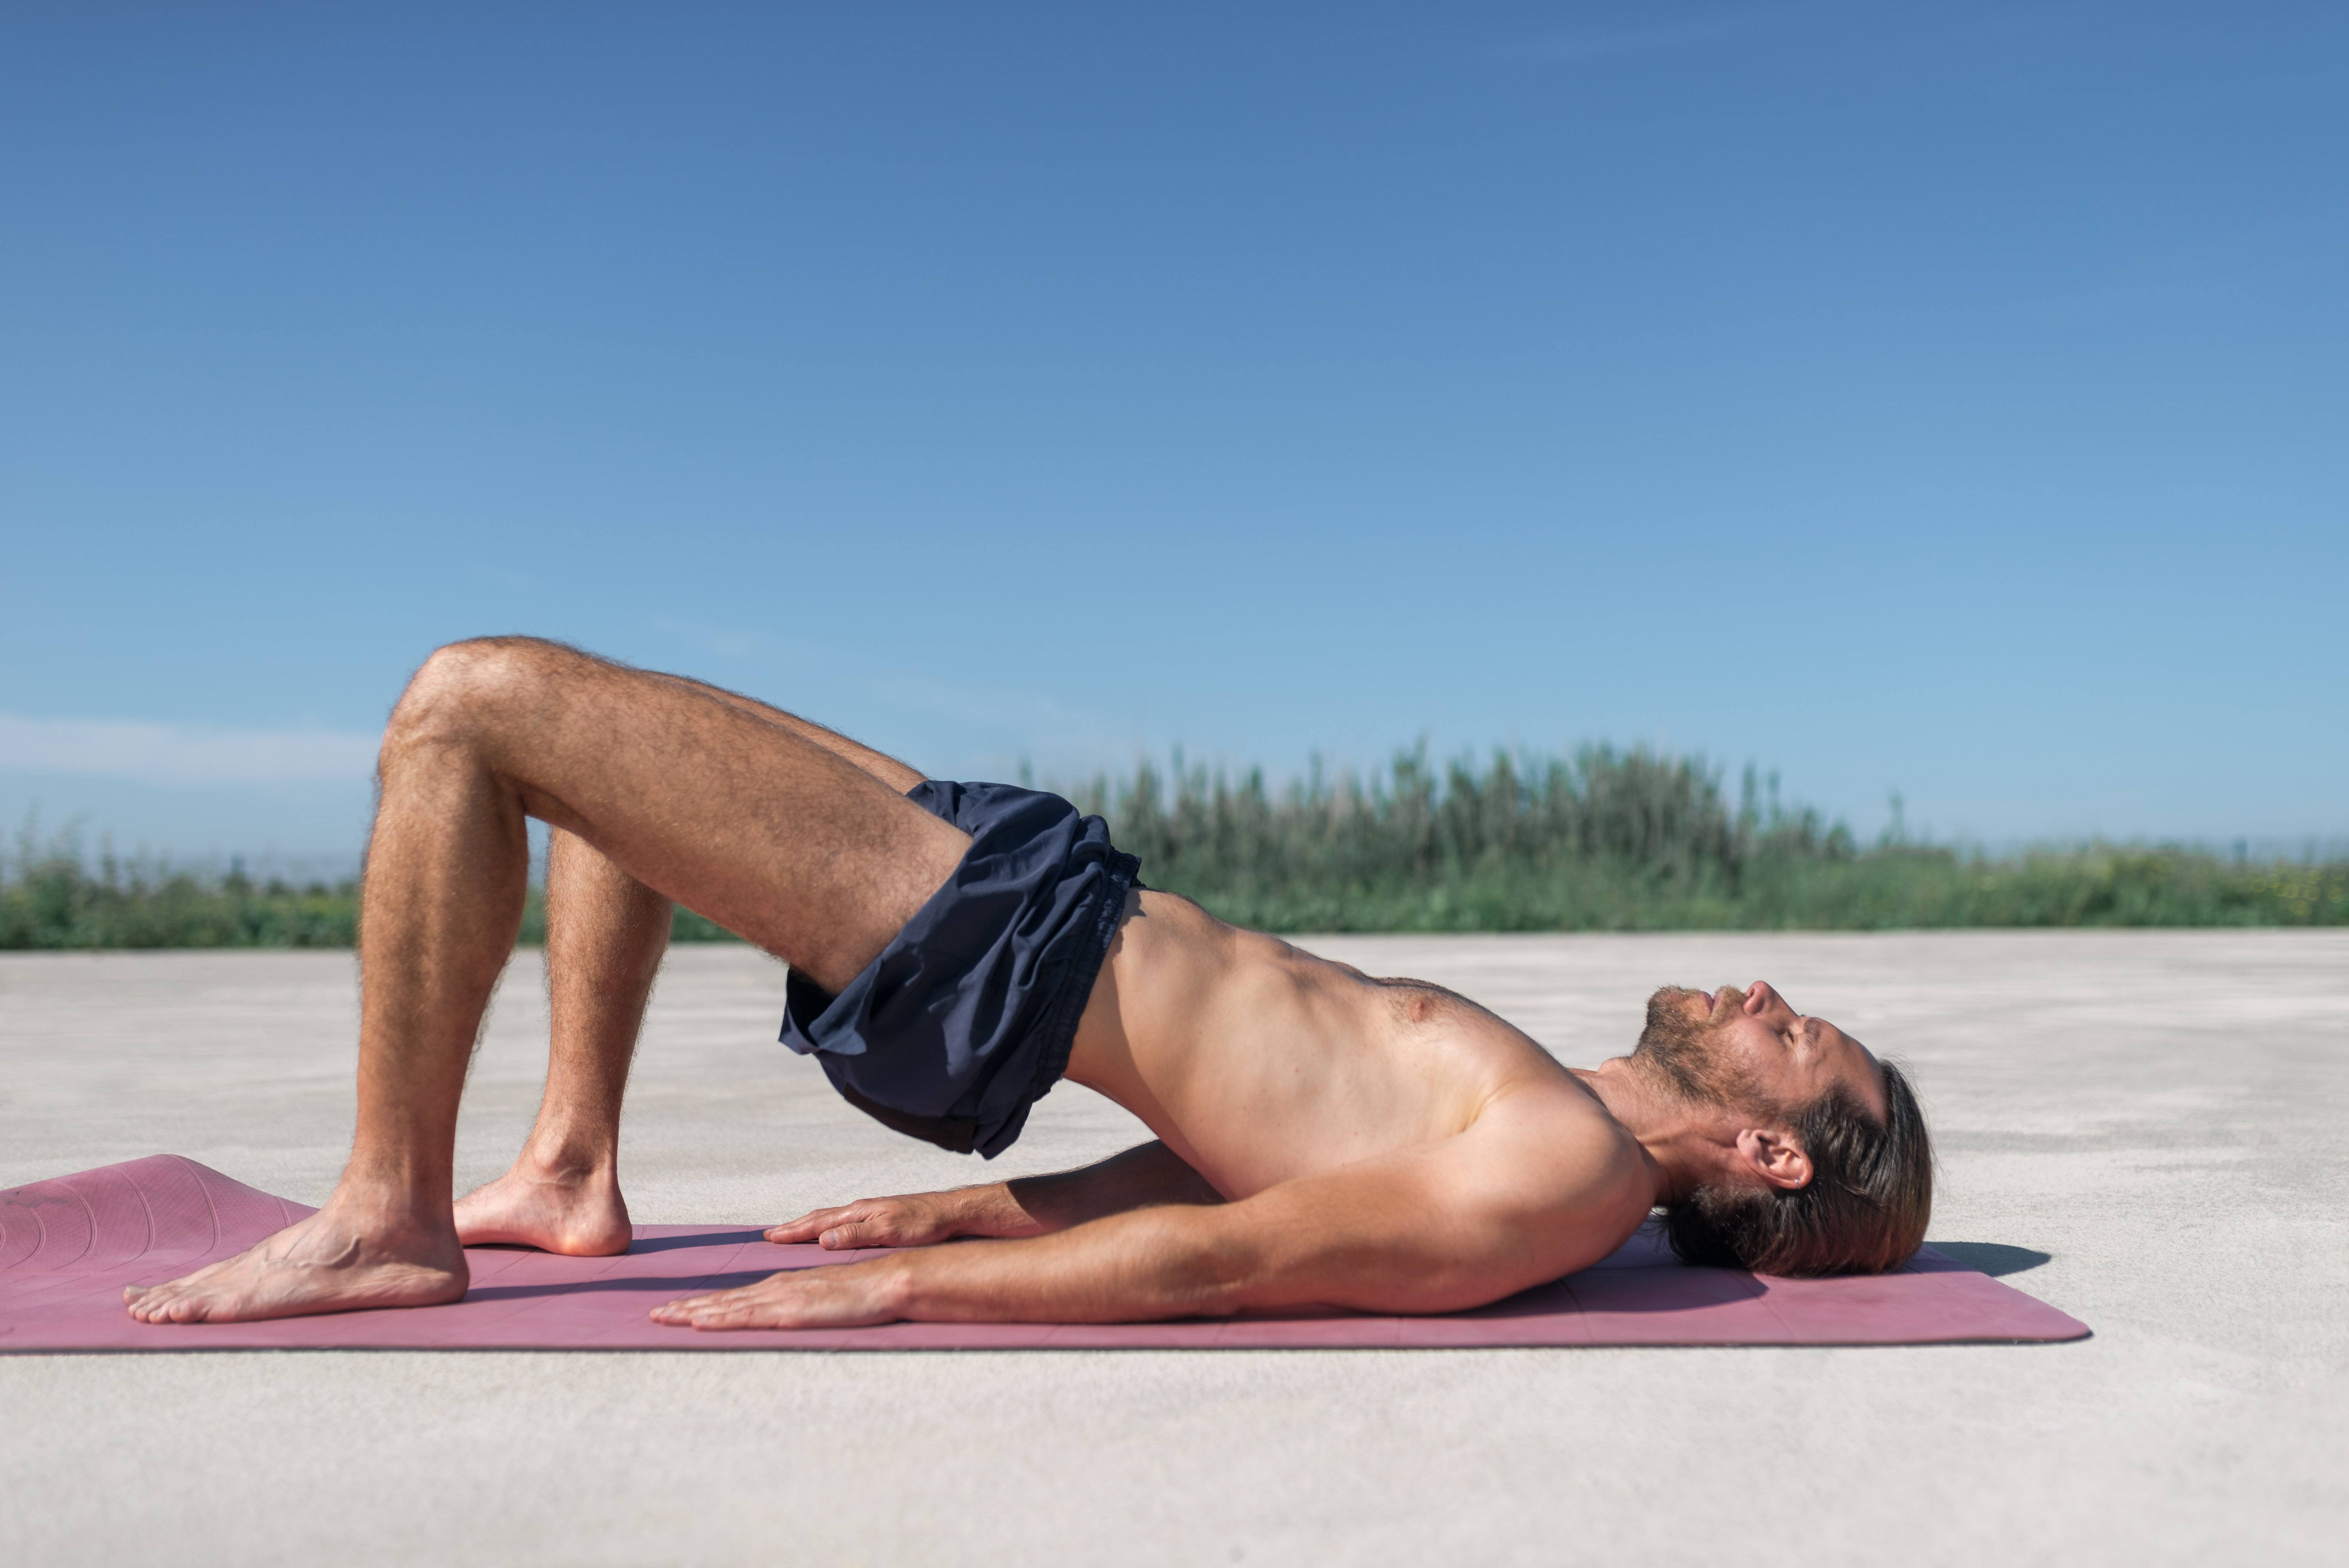 How Men Should Exercise The Pelvic Floor To Avoid Premature Ejaculation